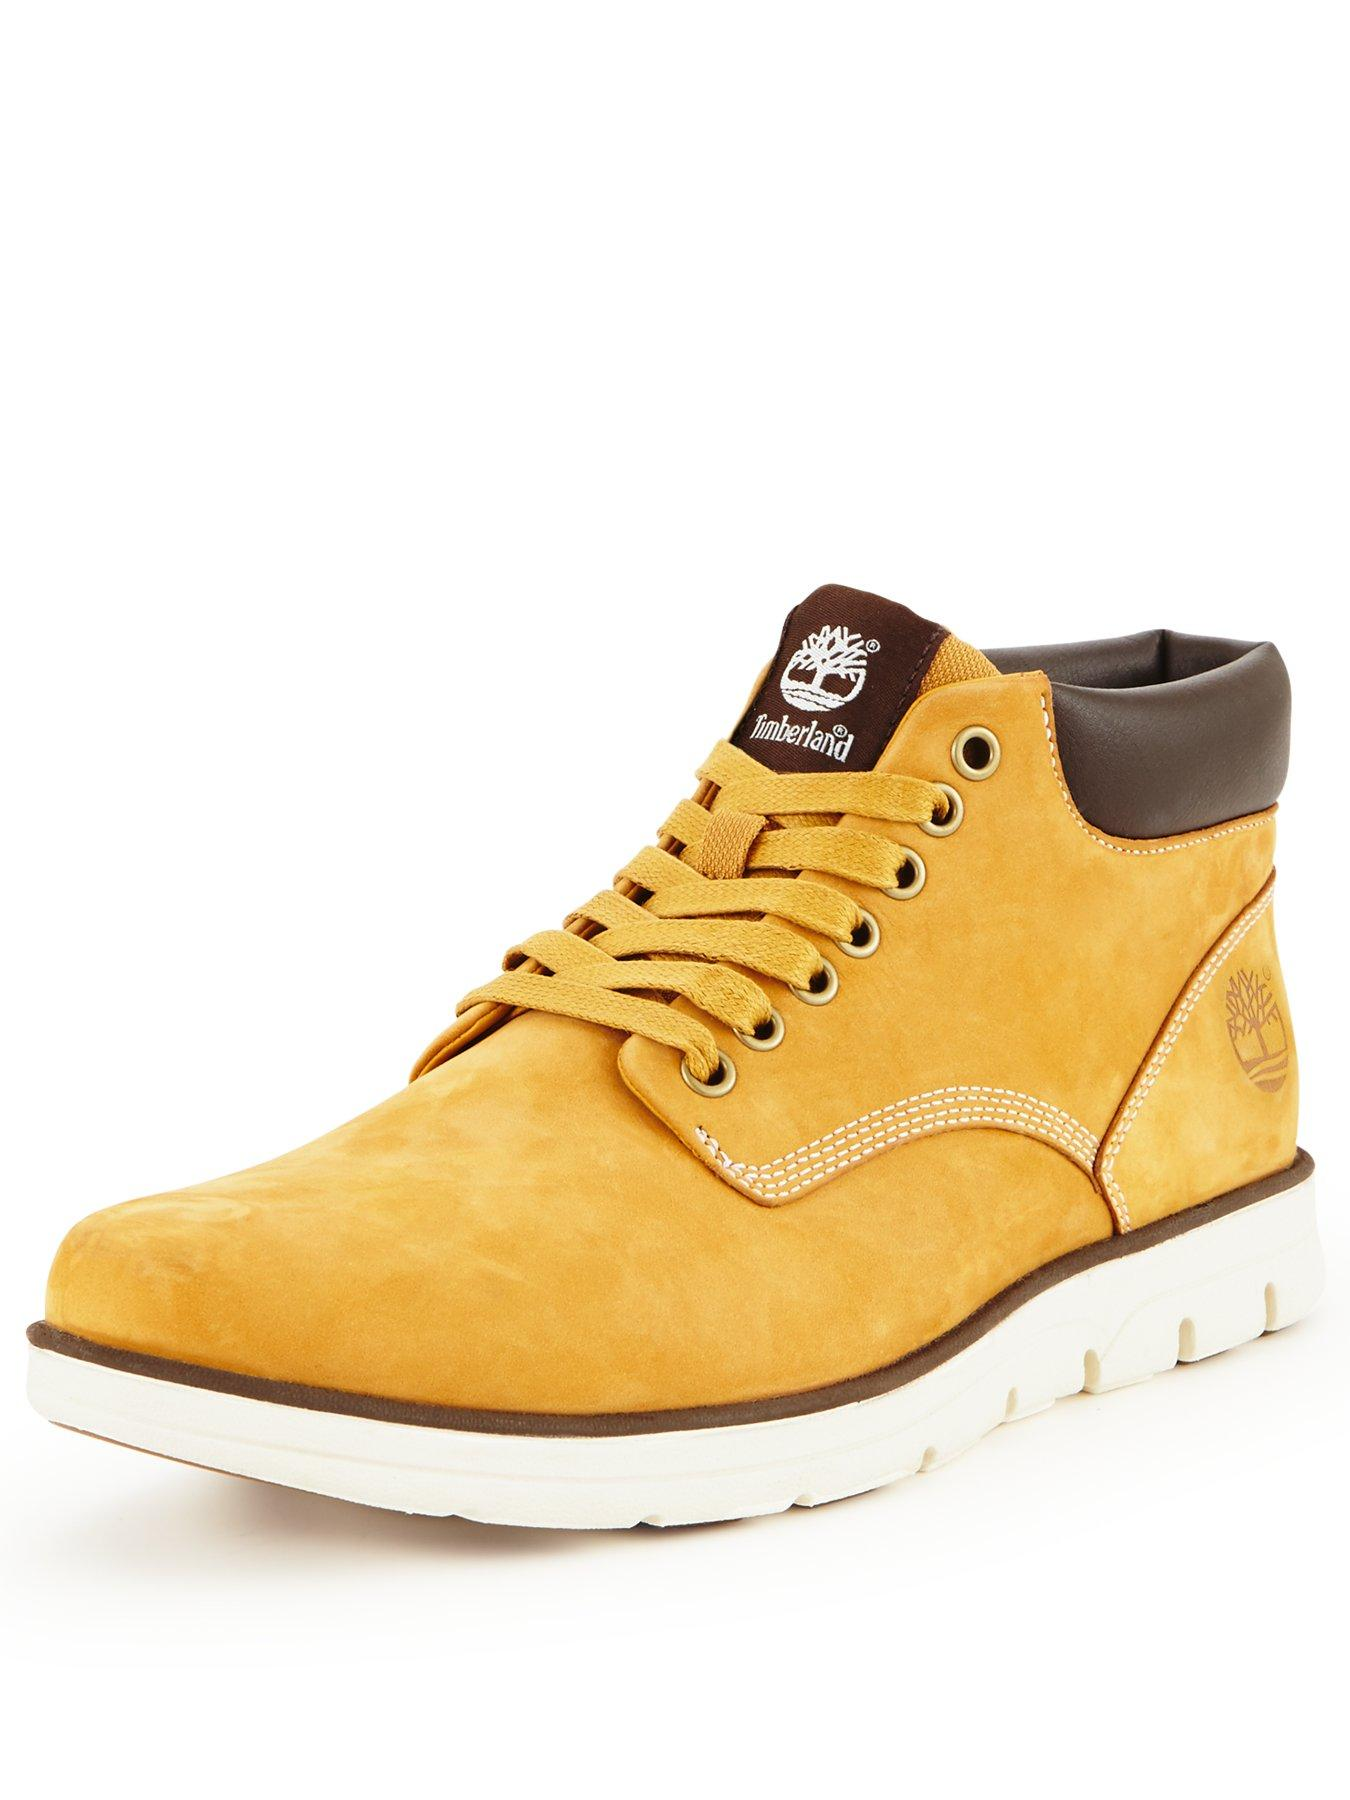 Timberland | Shoes & boots | Men | very.co.uk